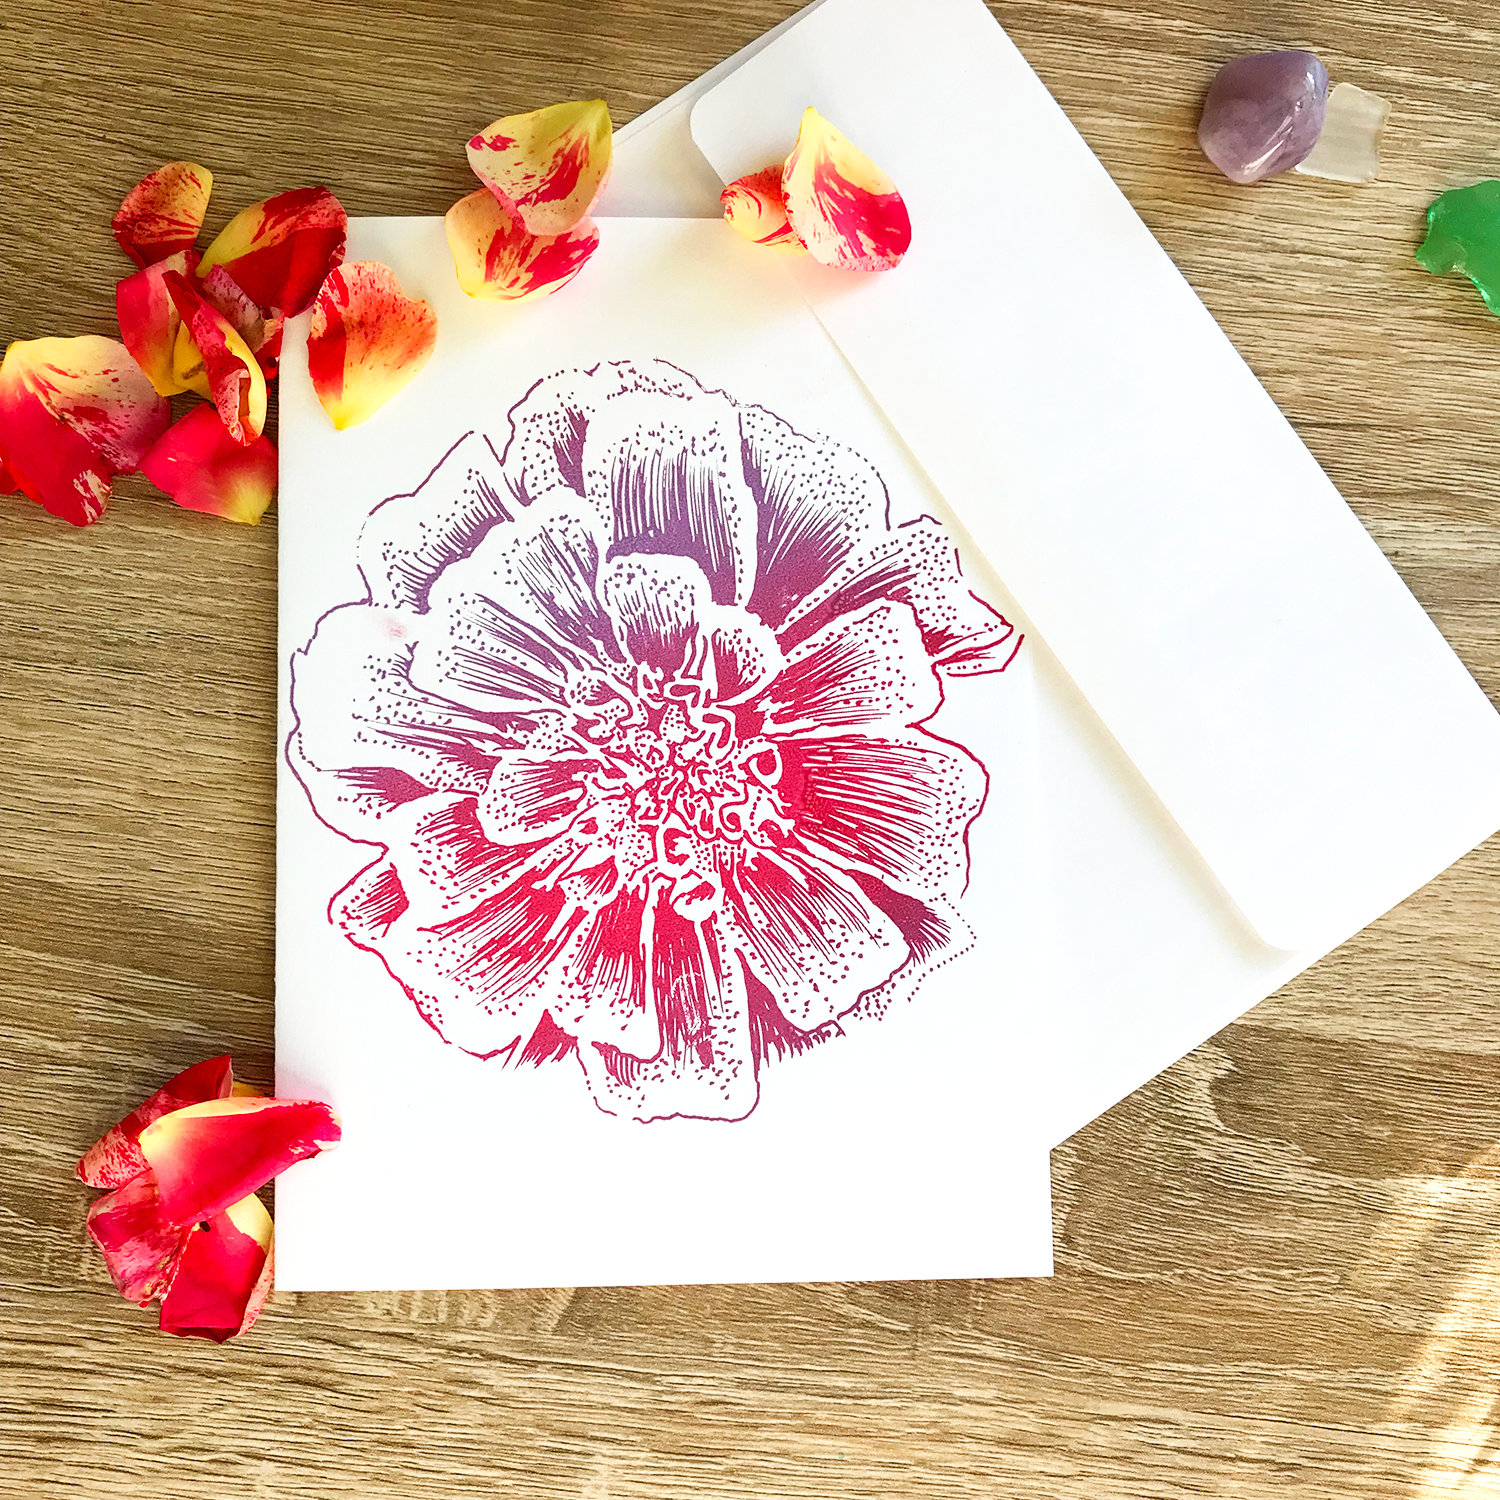 screenprinted greeting card